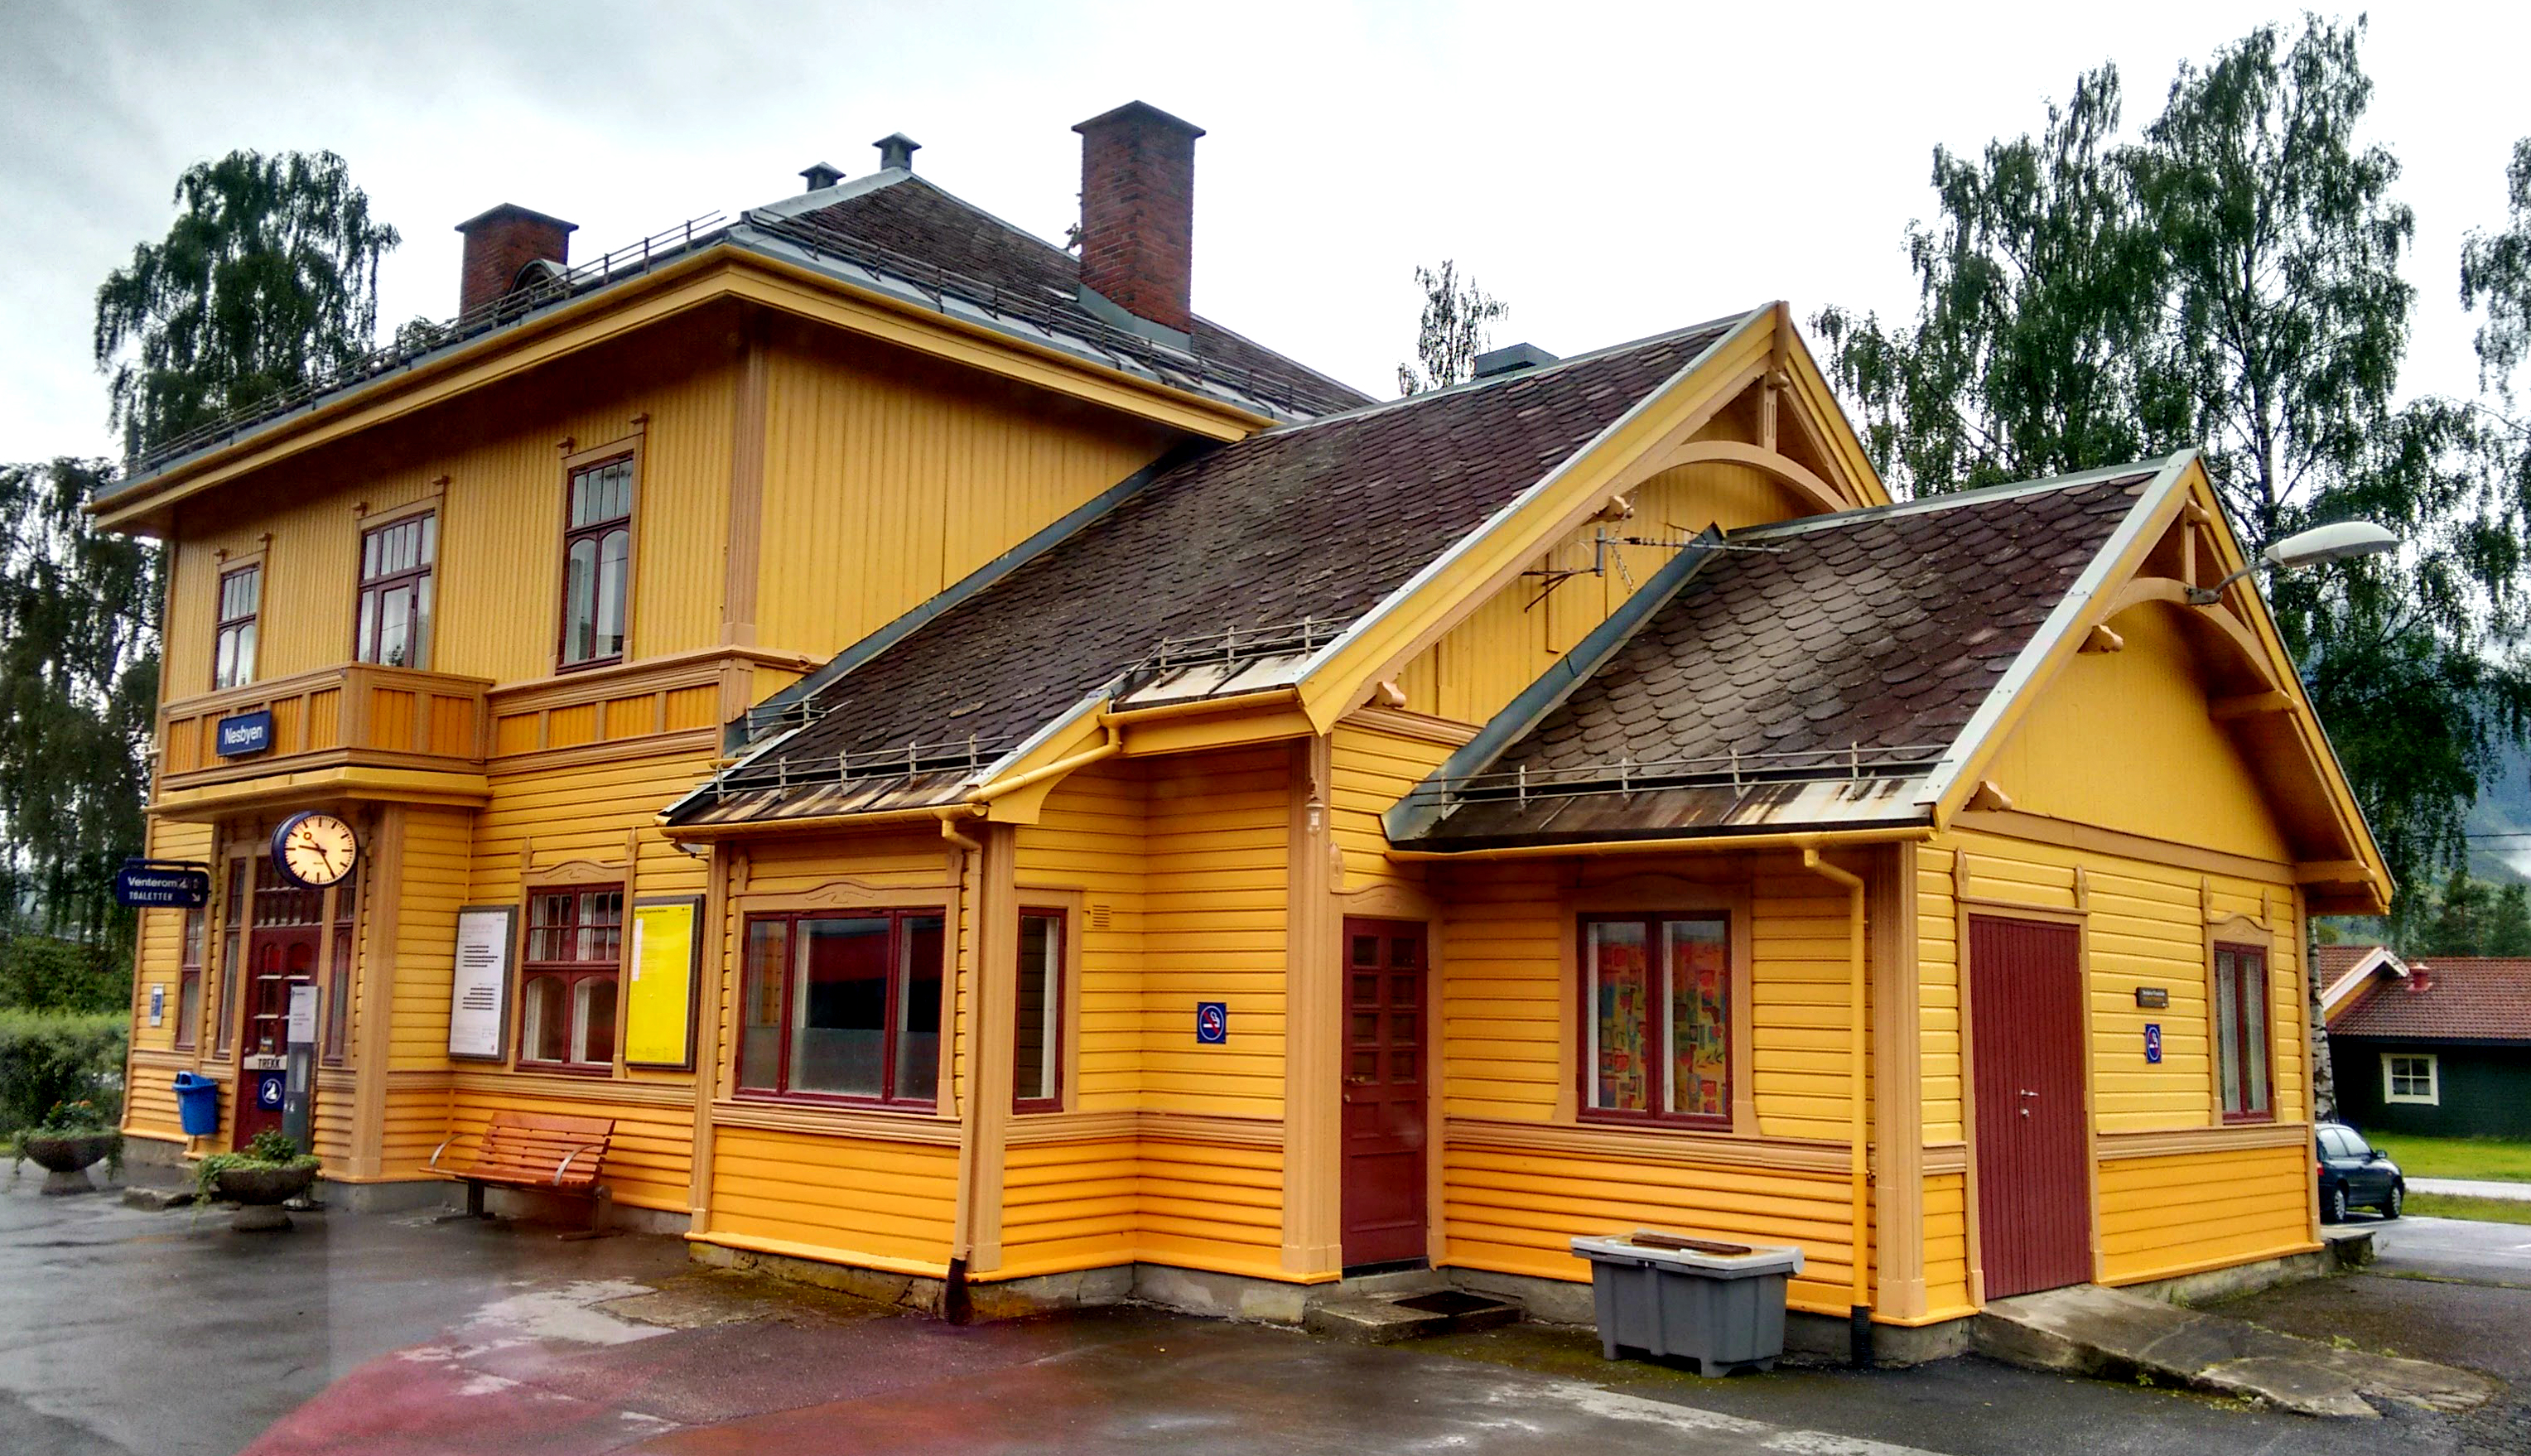 Storybook train stations! A train station in Oslo-Myrdal rail route